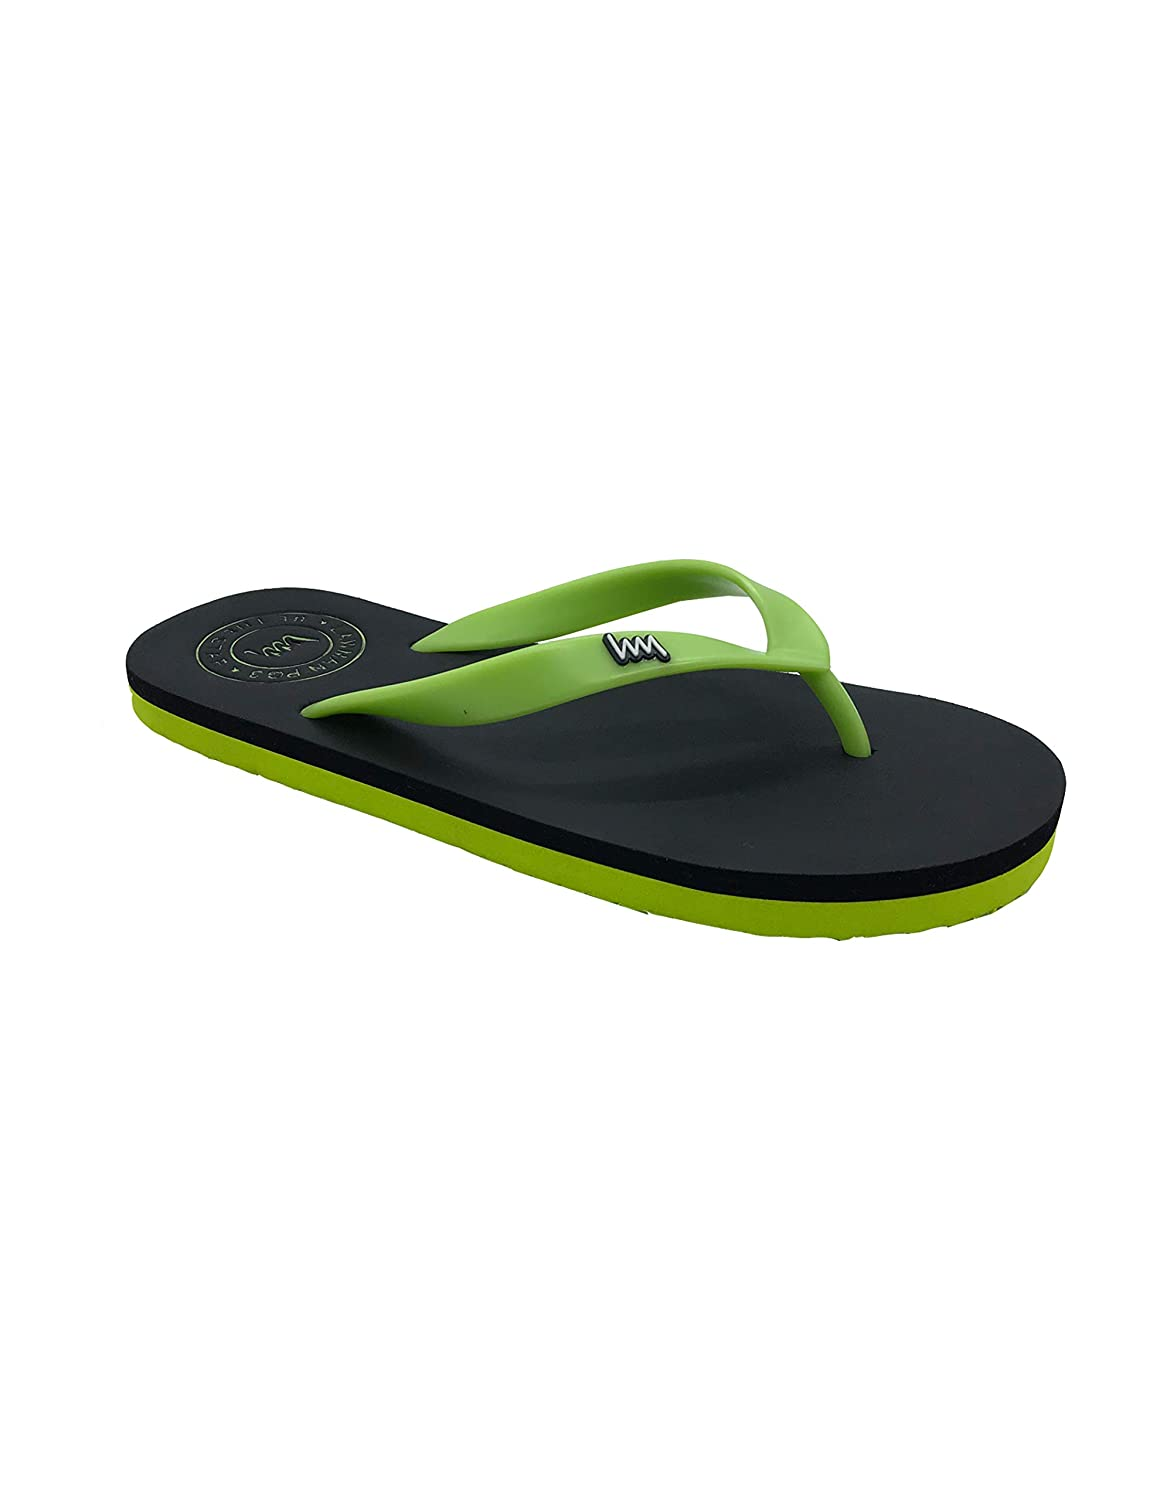 e2876e674 LAWMAN PG3 Men s Black and Green Fur Flip-Flops and House Slippers (10)   Buy Online at Low Prices in India - Amazon.in